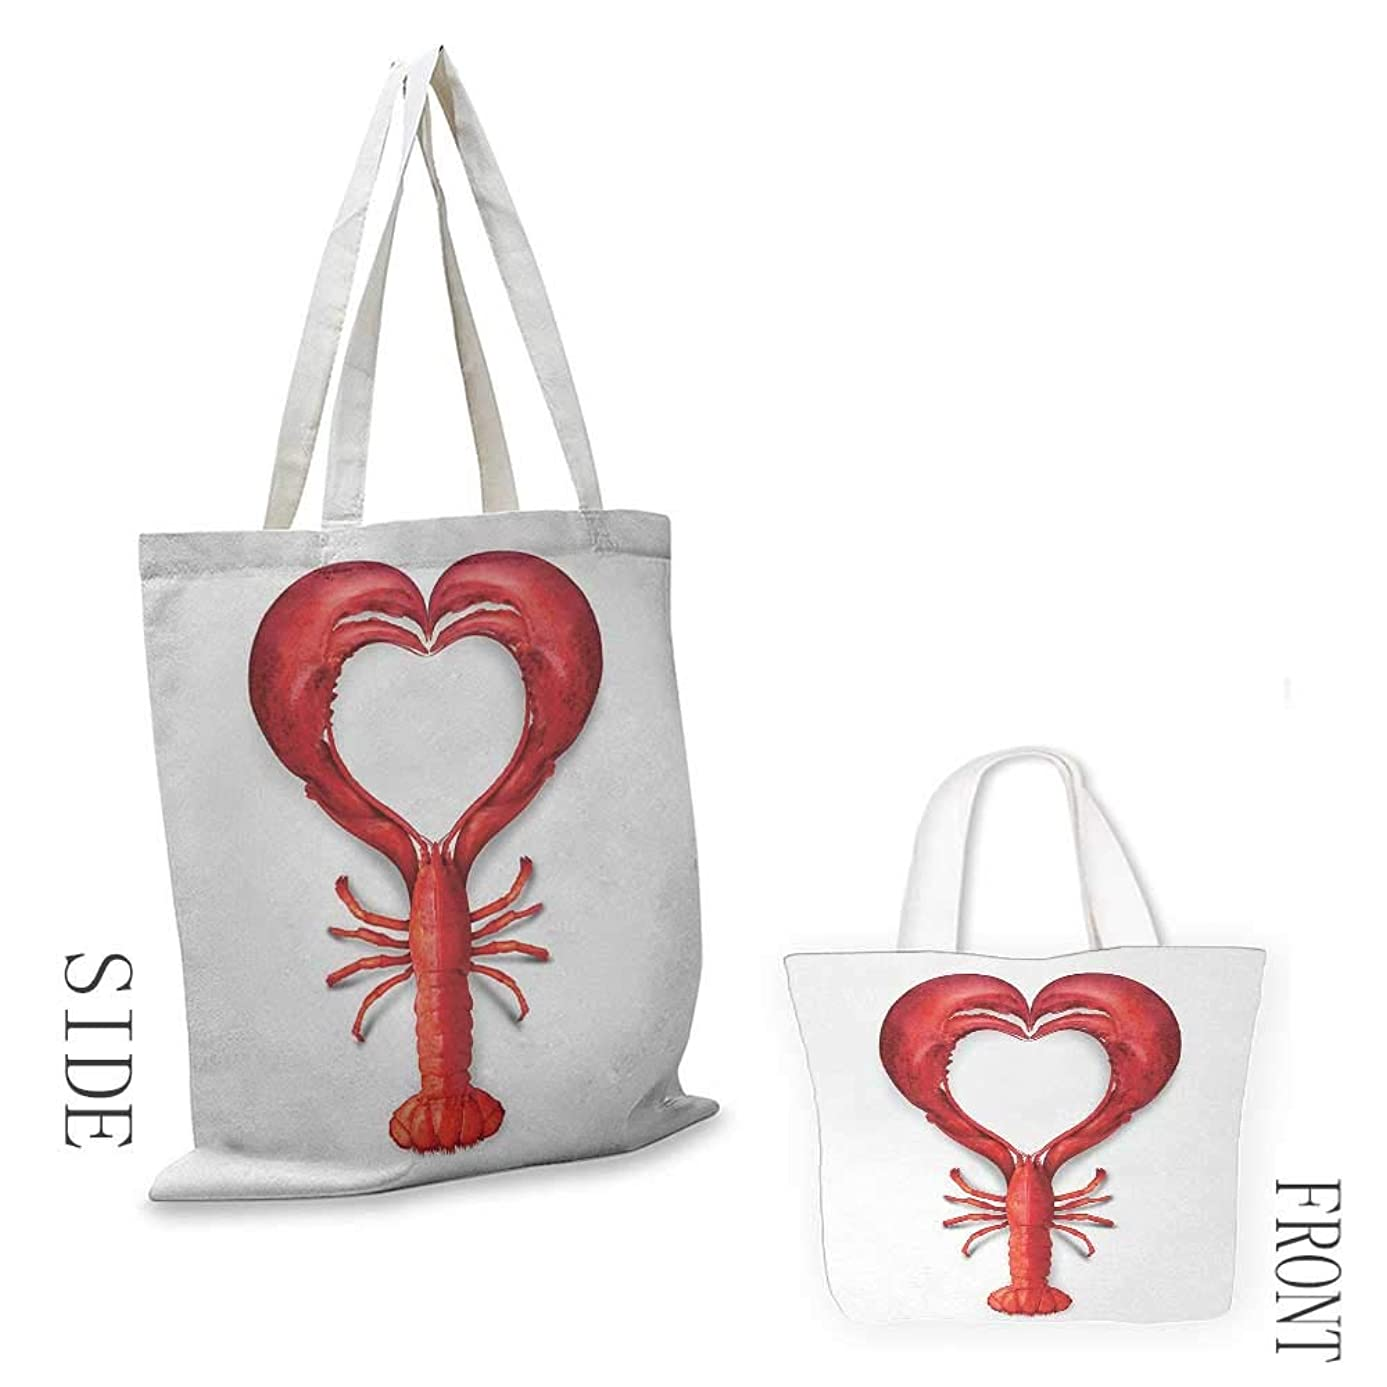 Tote bag Sea Animals A Boiled Lobster Shaped as A Heart Symbol Seafood Love Valentines Restaurant Menu Art Coin cash wallet 16.5